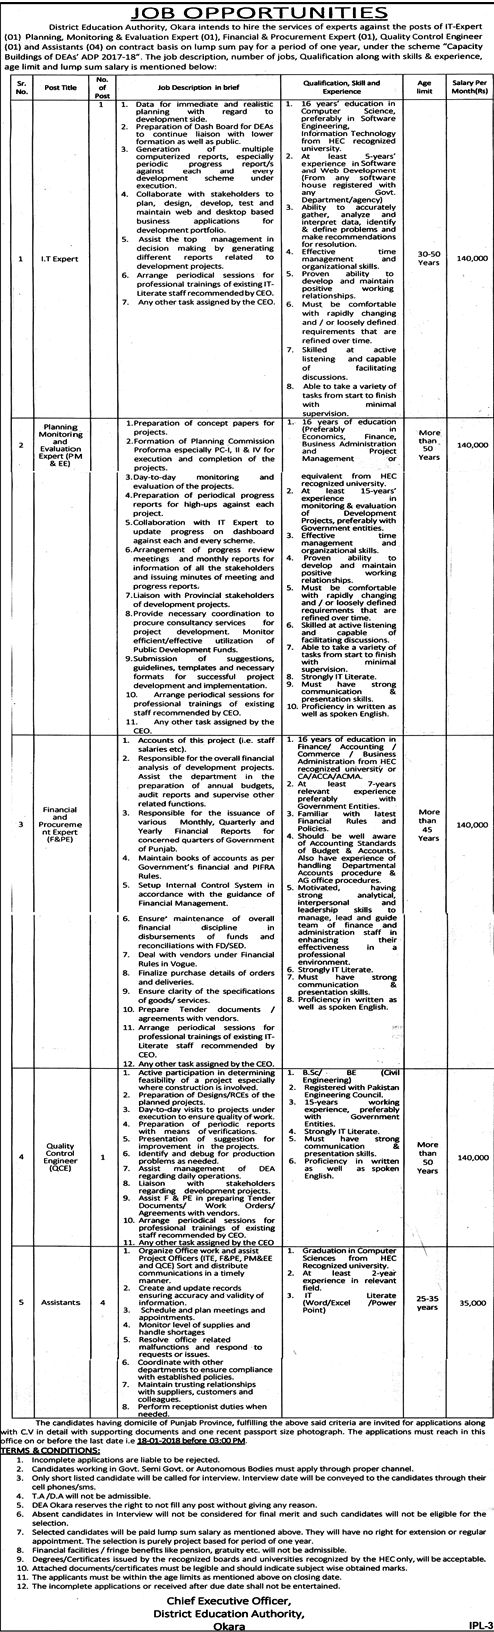 District Education Authority Okara Job Opportunities   IT Expert  Planing Monitoring and Evaluation Expert (PM & EE)  Financial and Procurement Expert (F&PE)  Quality Control Engineer (QCE)  Assistants  Last Date and time: 18-01-2018 before 03:00PM             (adsbygoogle = window.adsbygoogle || ).   #Advertisement #Bureau #ComputerOperator #DIRECTORATEOFCONSUMER #Division #Education #FormDownload #Government #GOVERNMENTOFTHEPUNJAB #Health #He